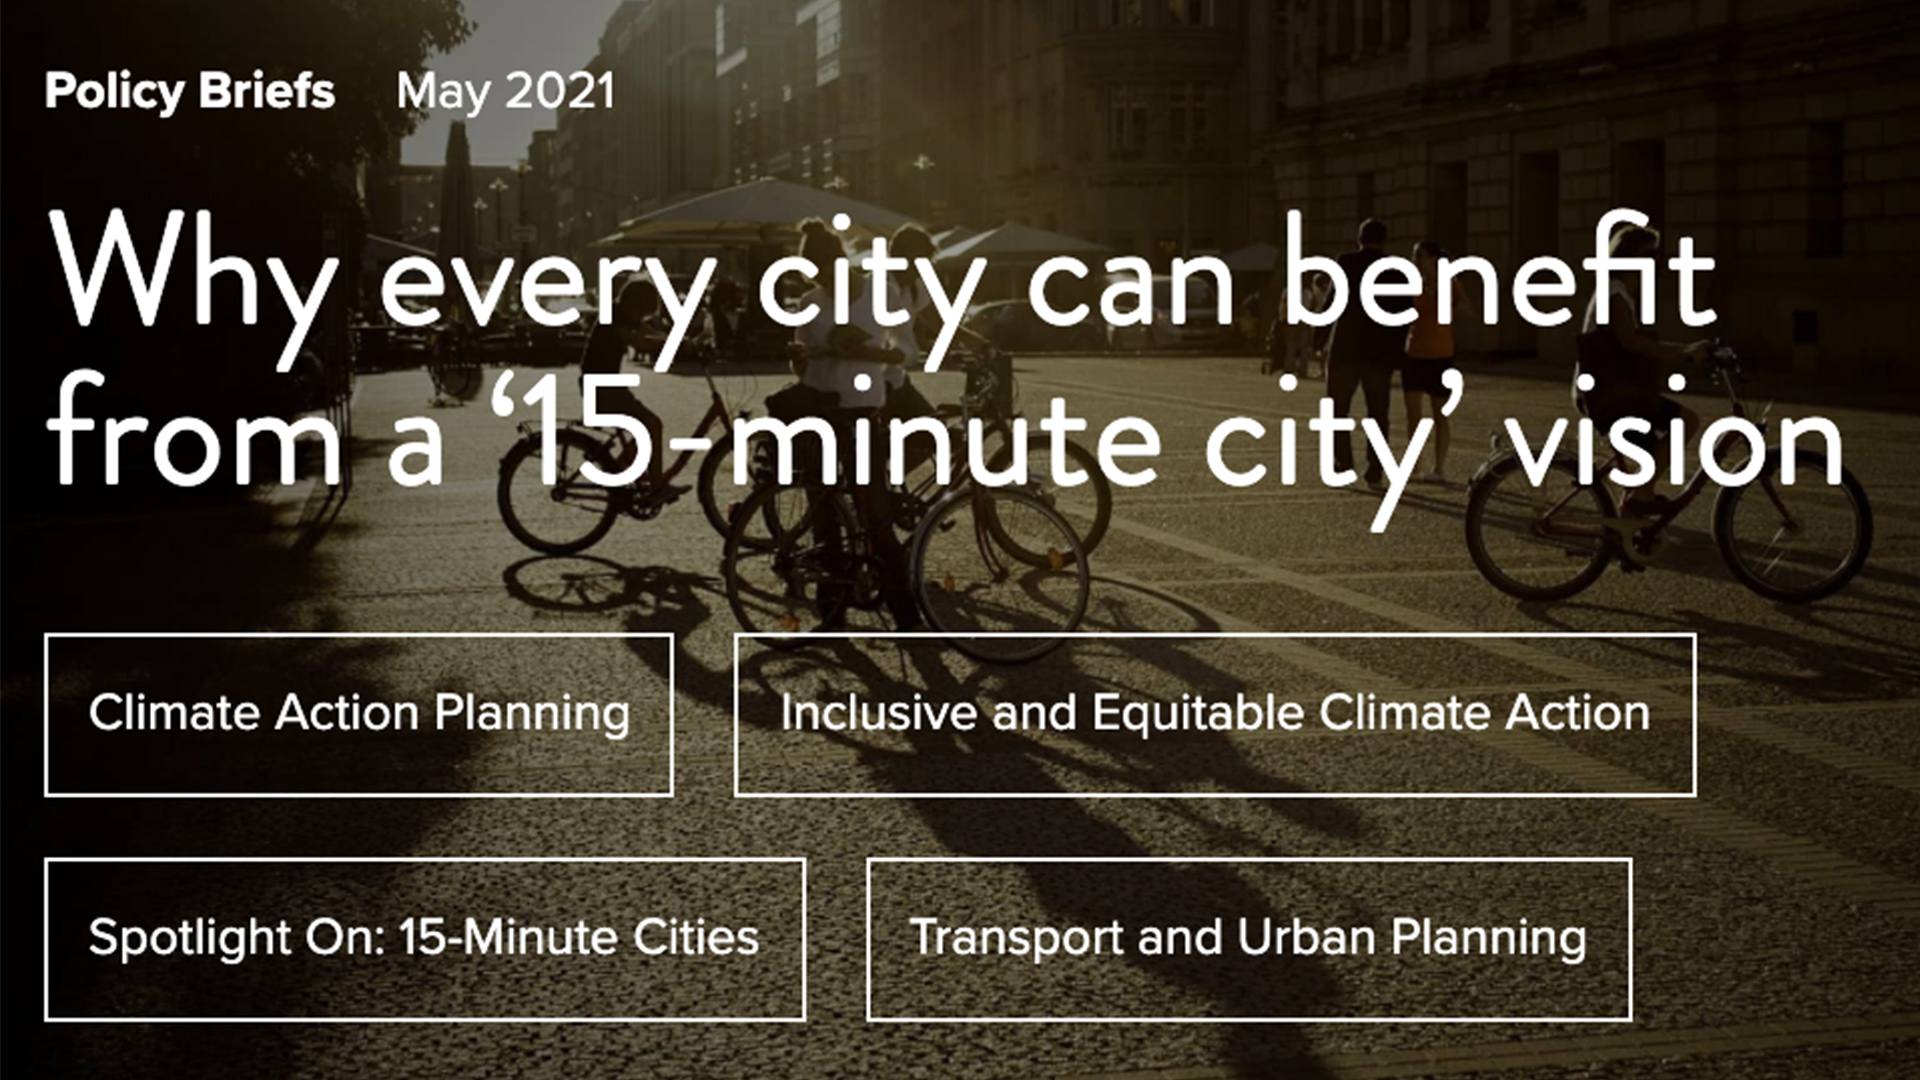 C40 Knowledge Hub – Why every city can benefit from a '15-minute city' vision – May 2021